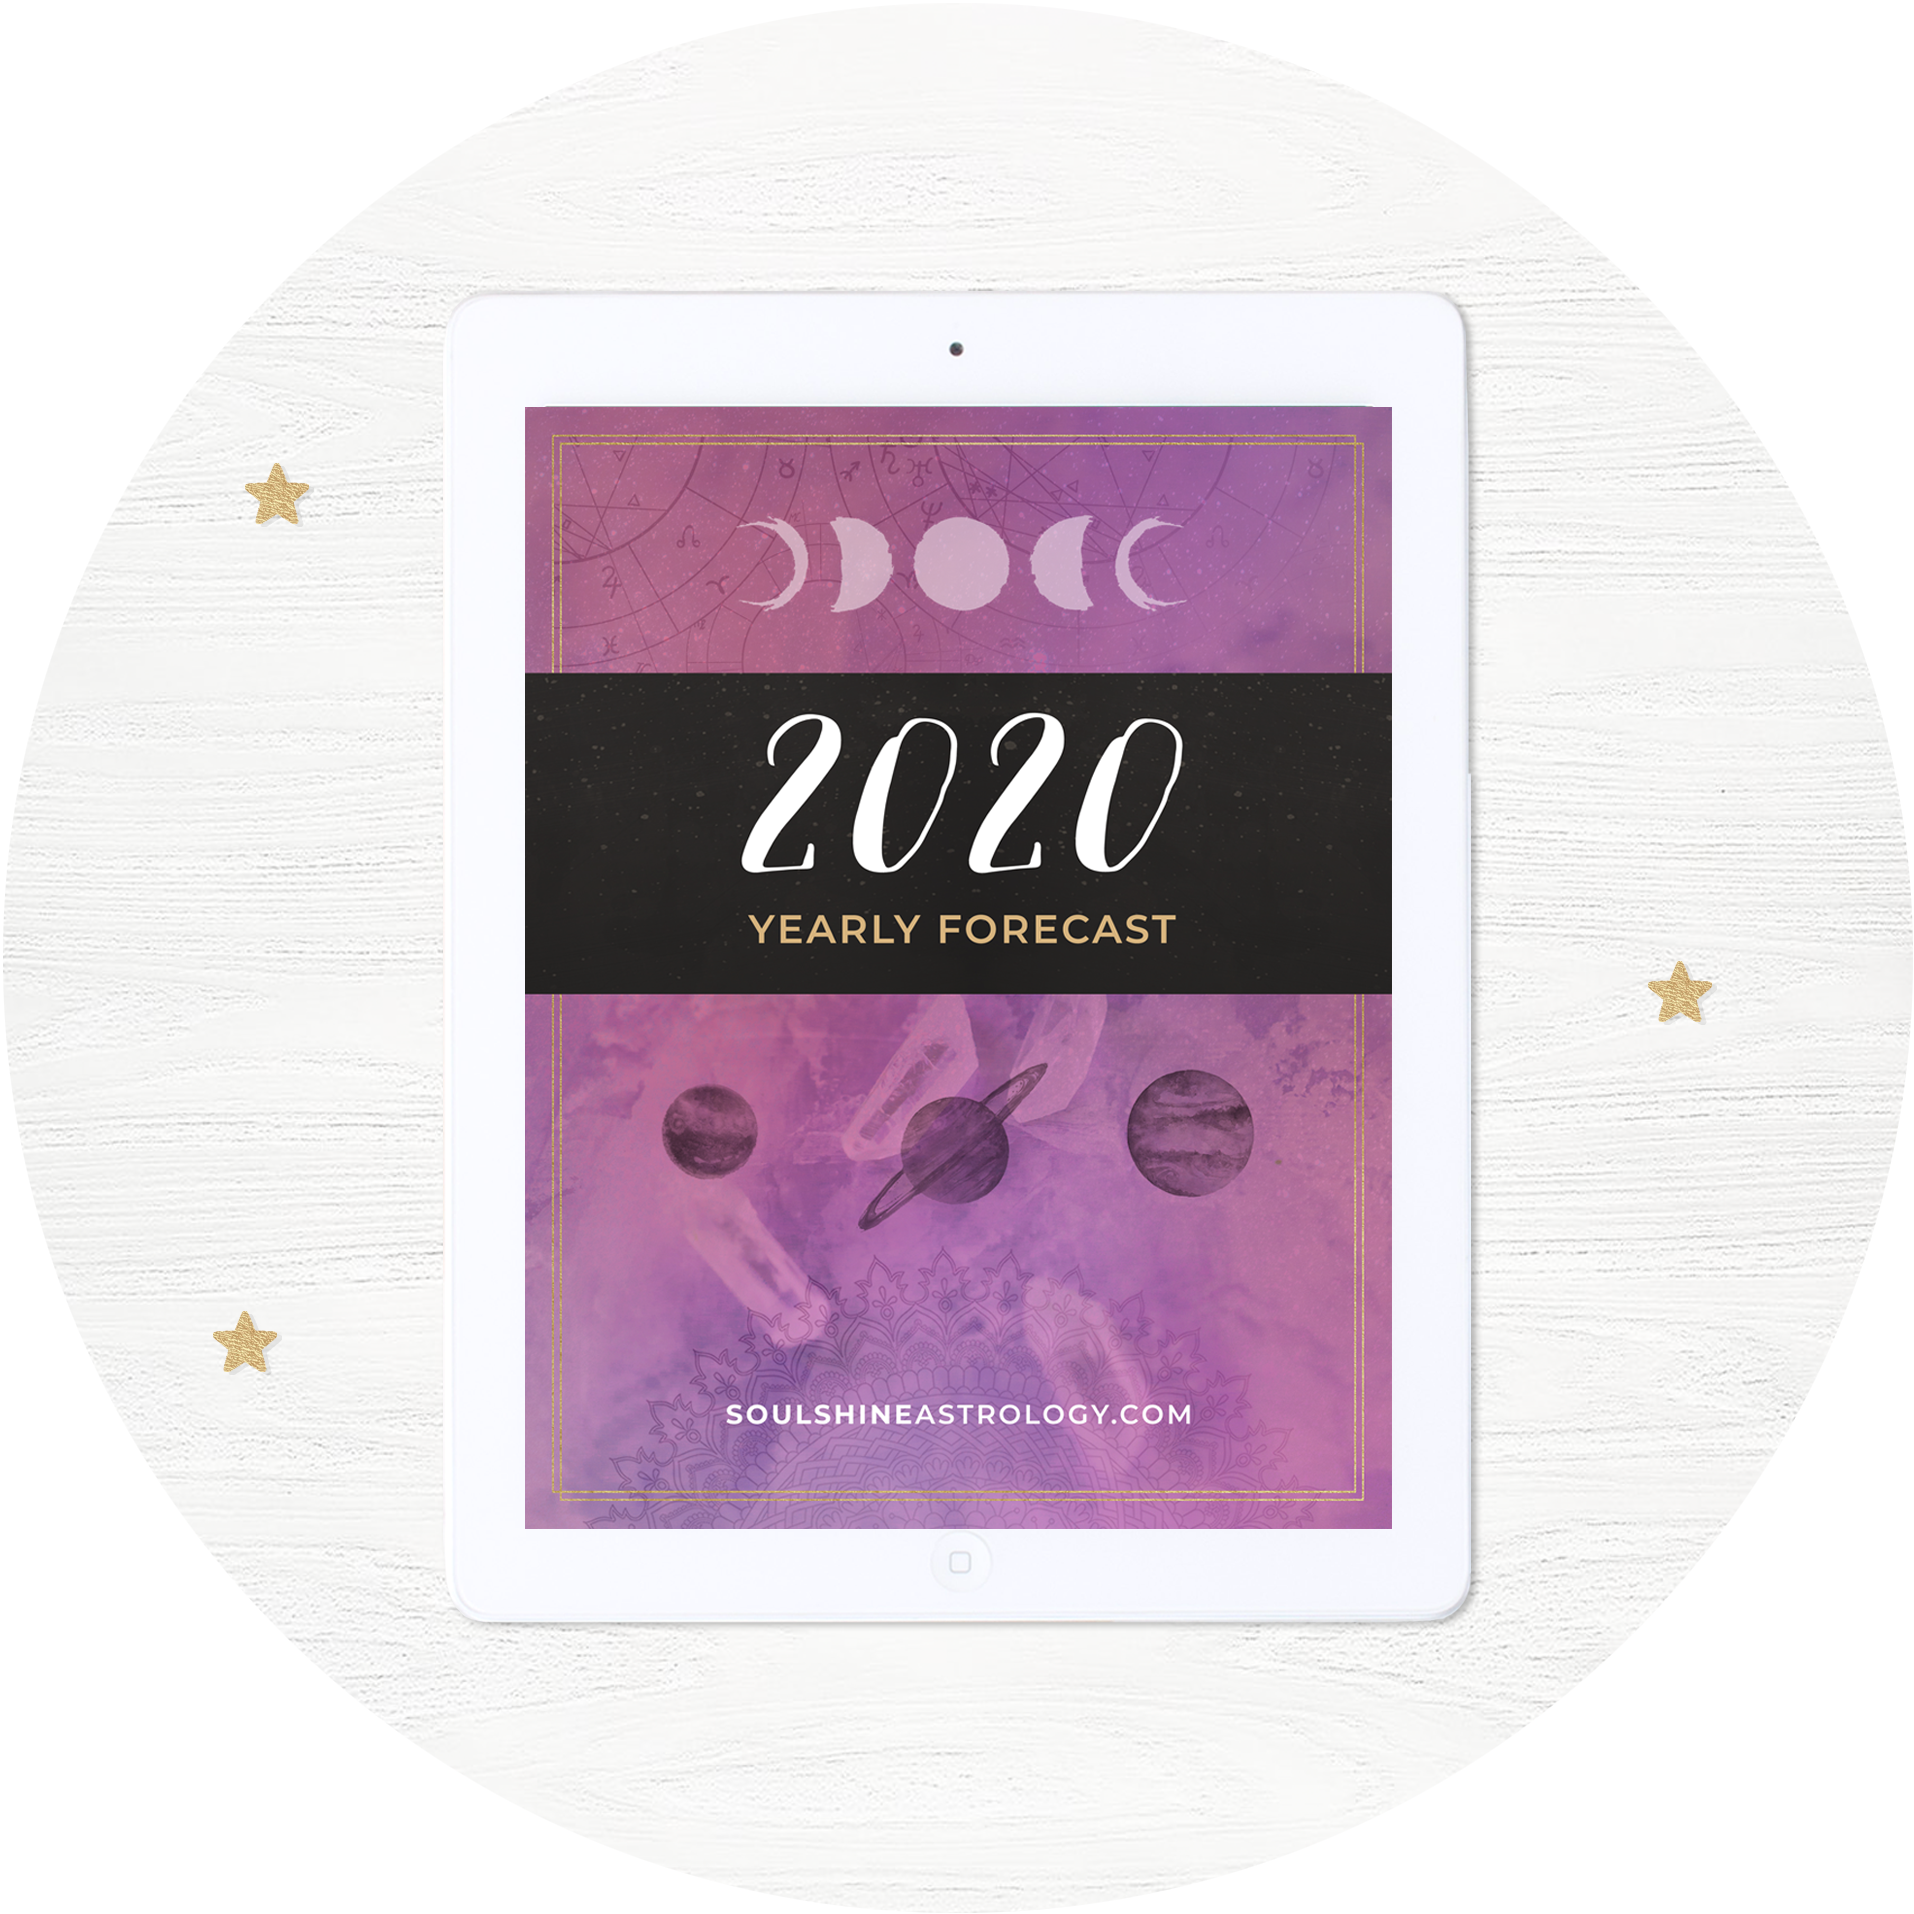 2020 Yearly Forecast eBook